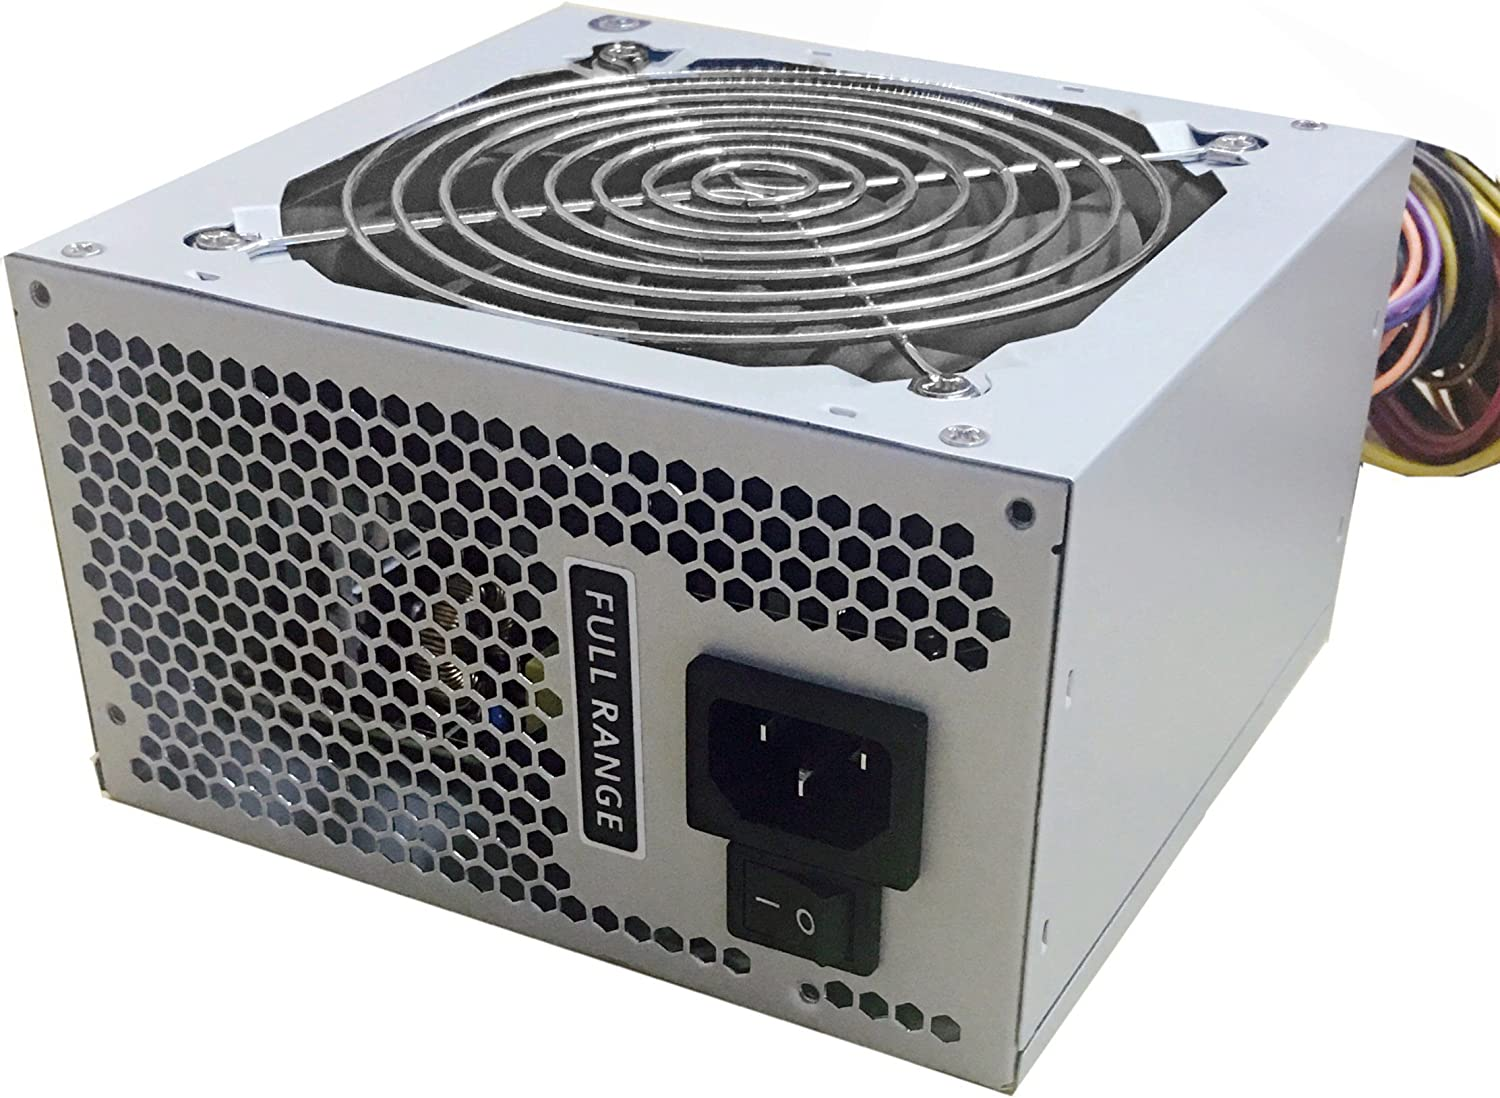 HIGH POWER HPC-430-N12S 430-WATT Intel-Approved PC Power Supply. Super low-noise performance upgrade with SATA HDD & PCI-EXPRESS Video Support for Dell Dimension 5150 5100 E510 E520 E521 3100 E310, Dell PowerEdge 800 830, DELL Part# MC633, PC357, N8372, NC905, C5201, and PH333 H305N-00